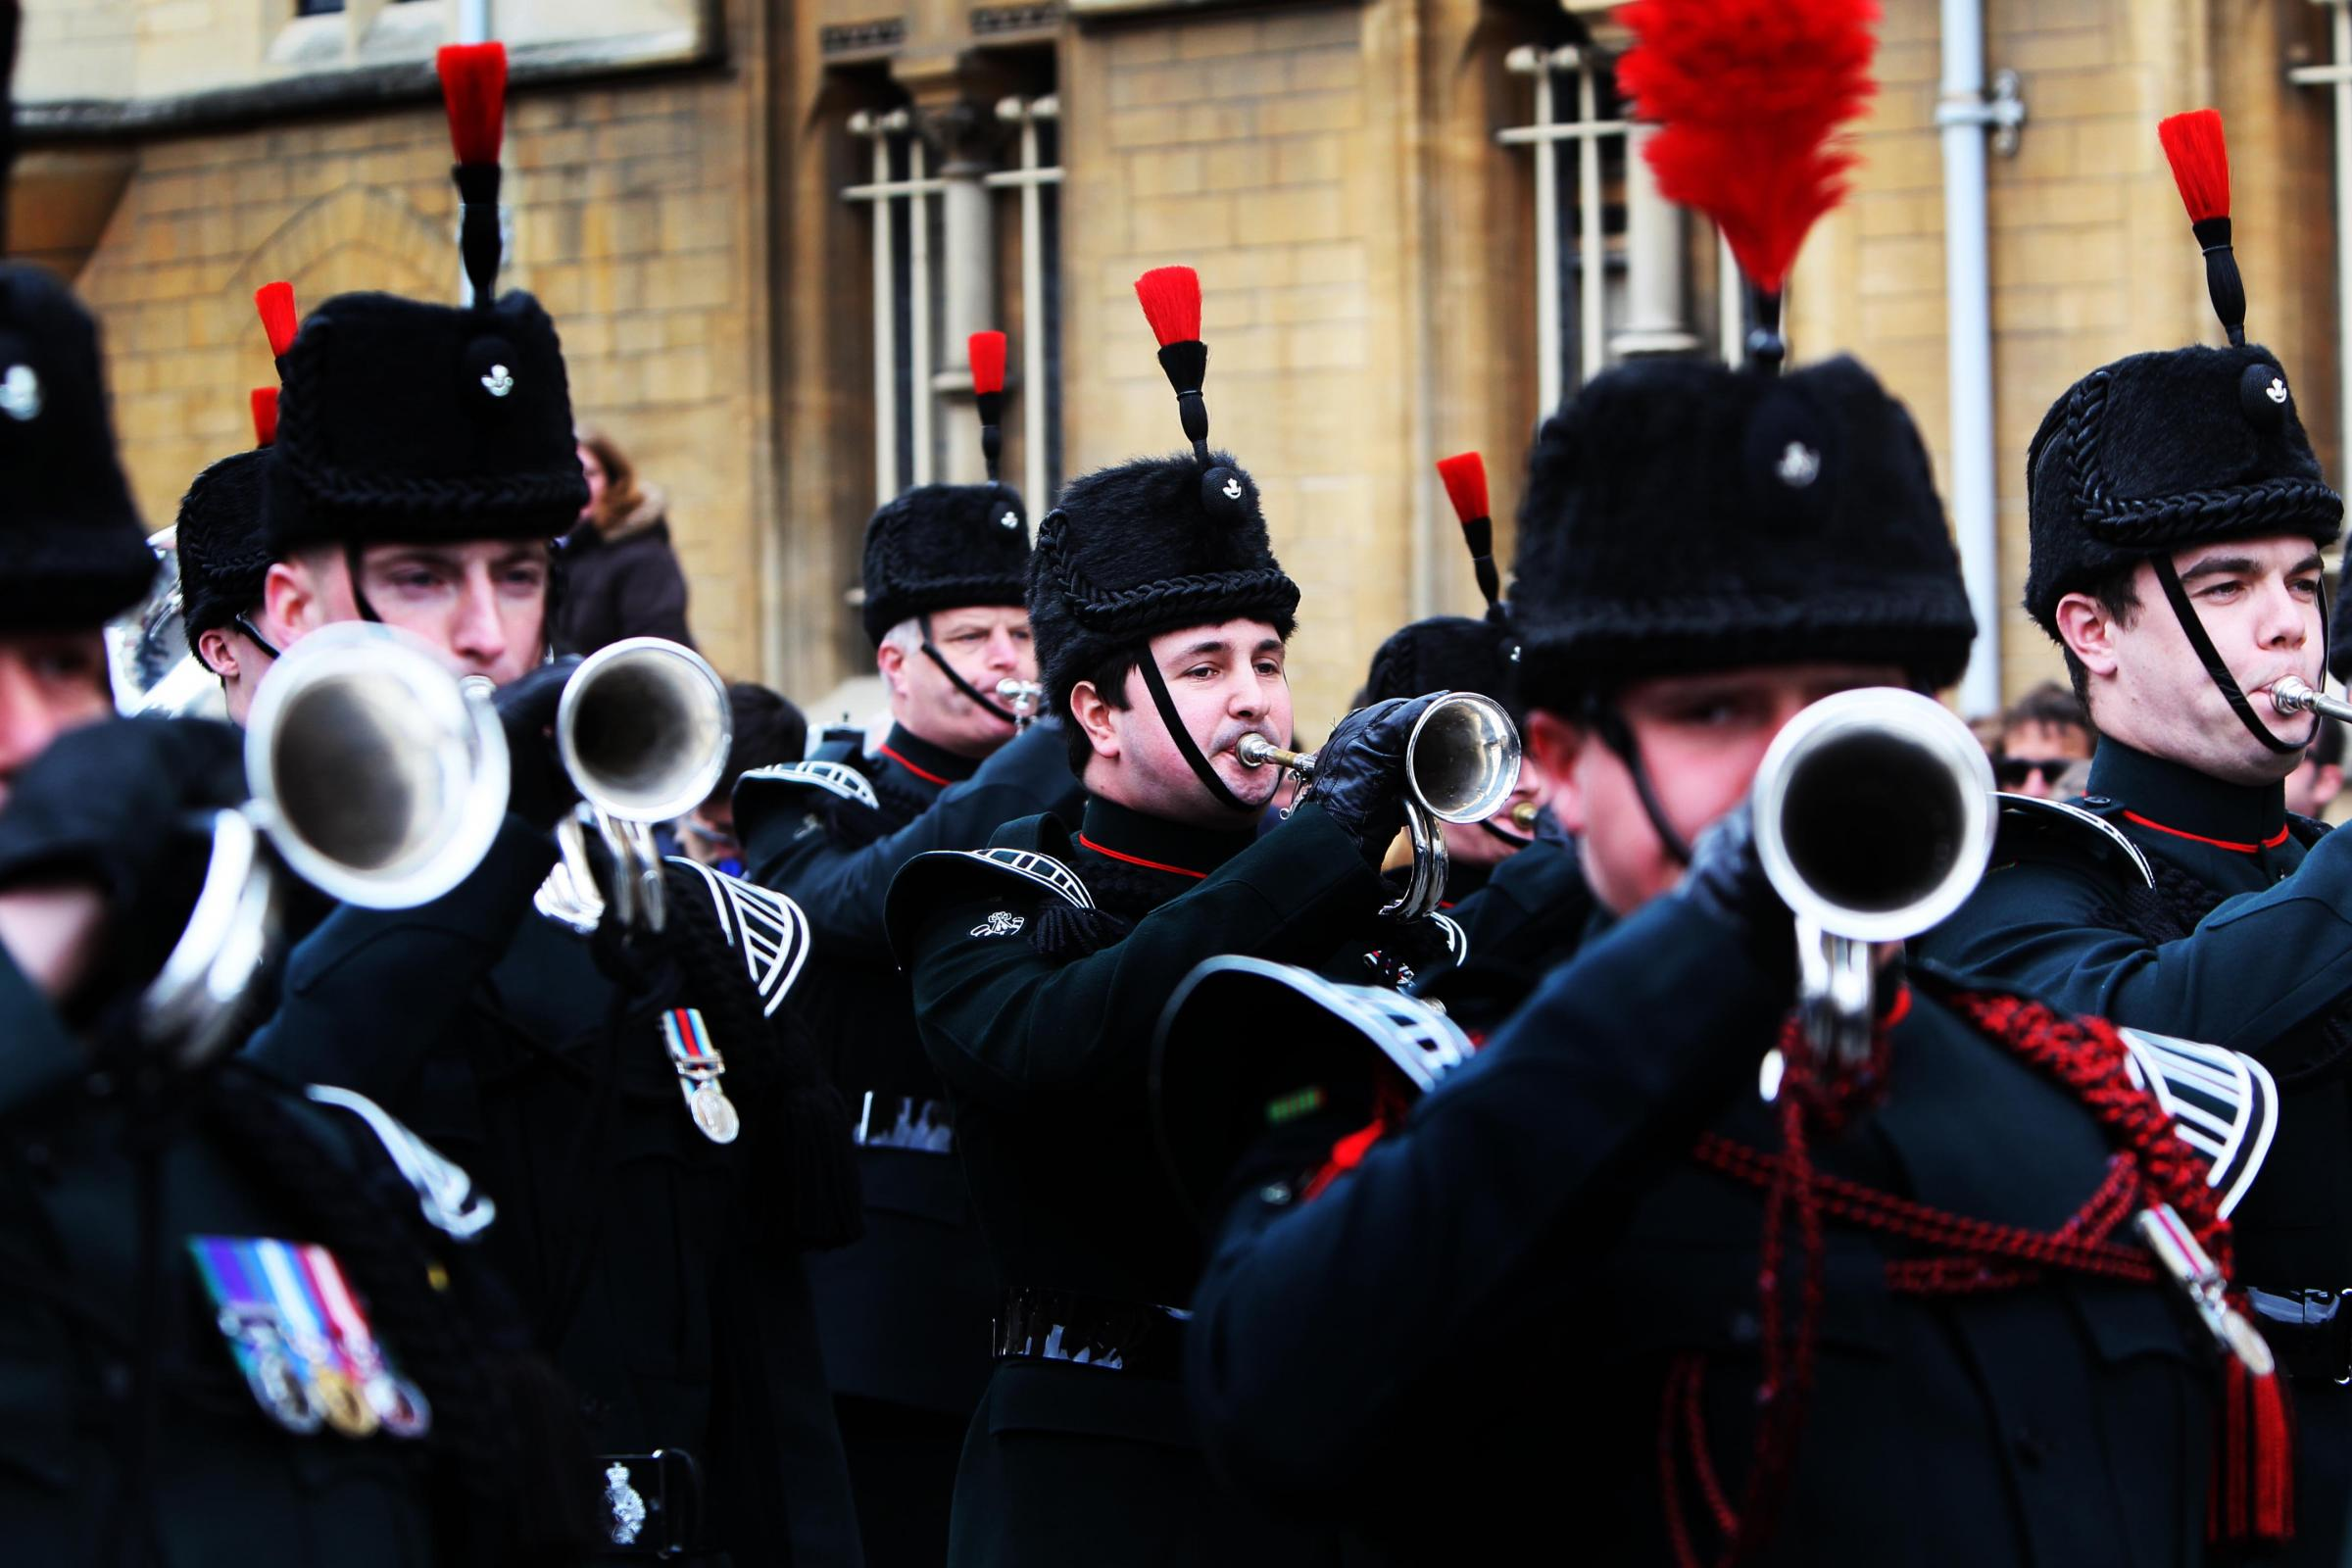 Spectacle: The Army Reserve band the Waterloo Band and Bugles of The Rifles carried out an impromptu flash mob performance in Broad Street, Oxford, in March